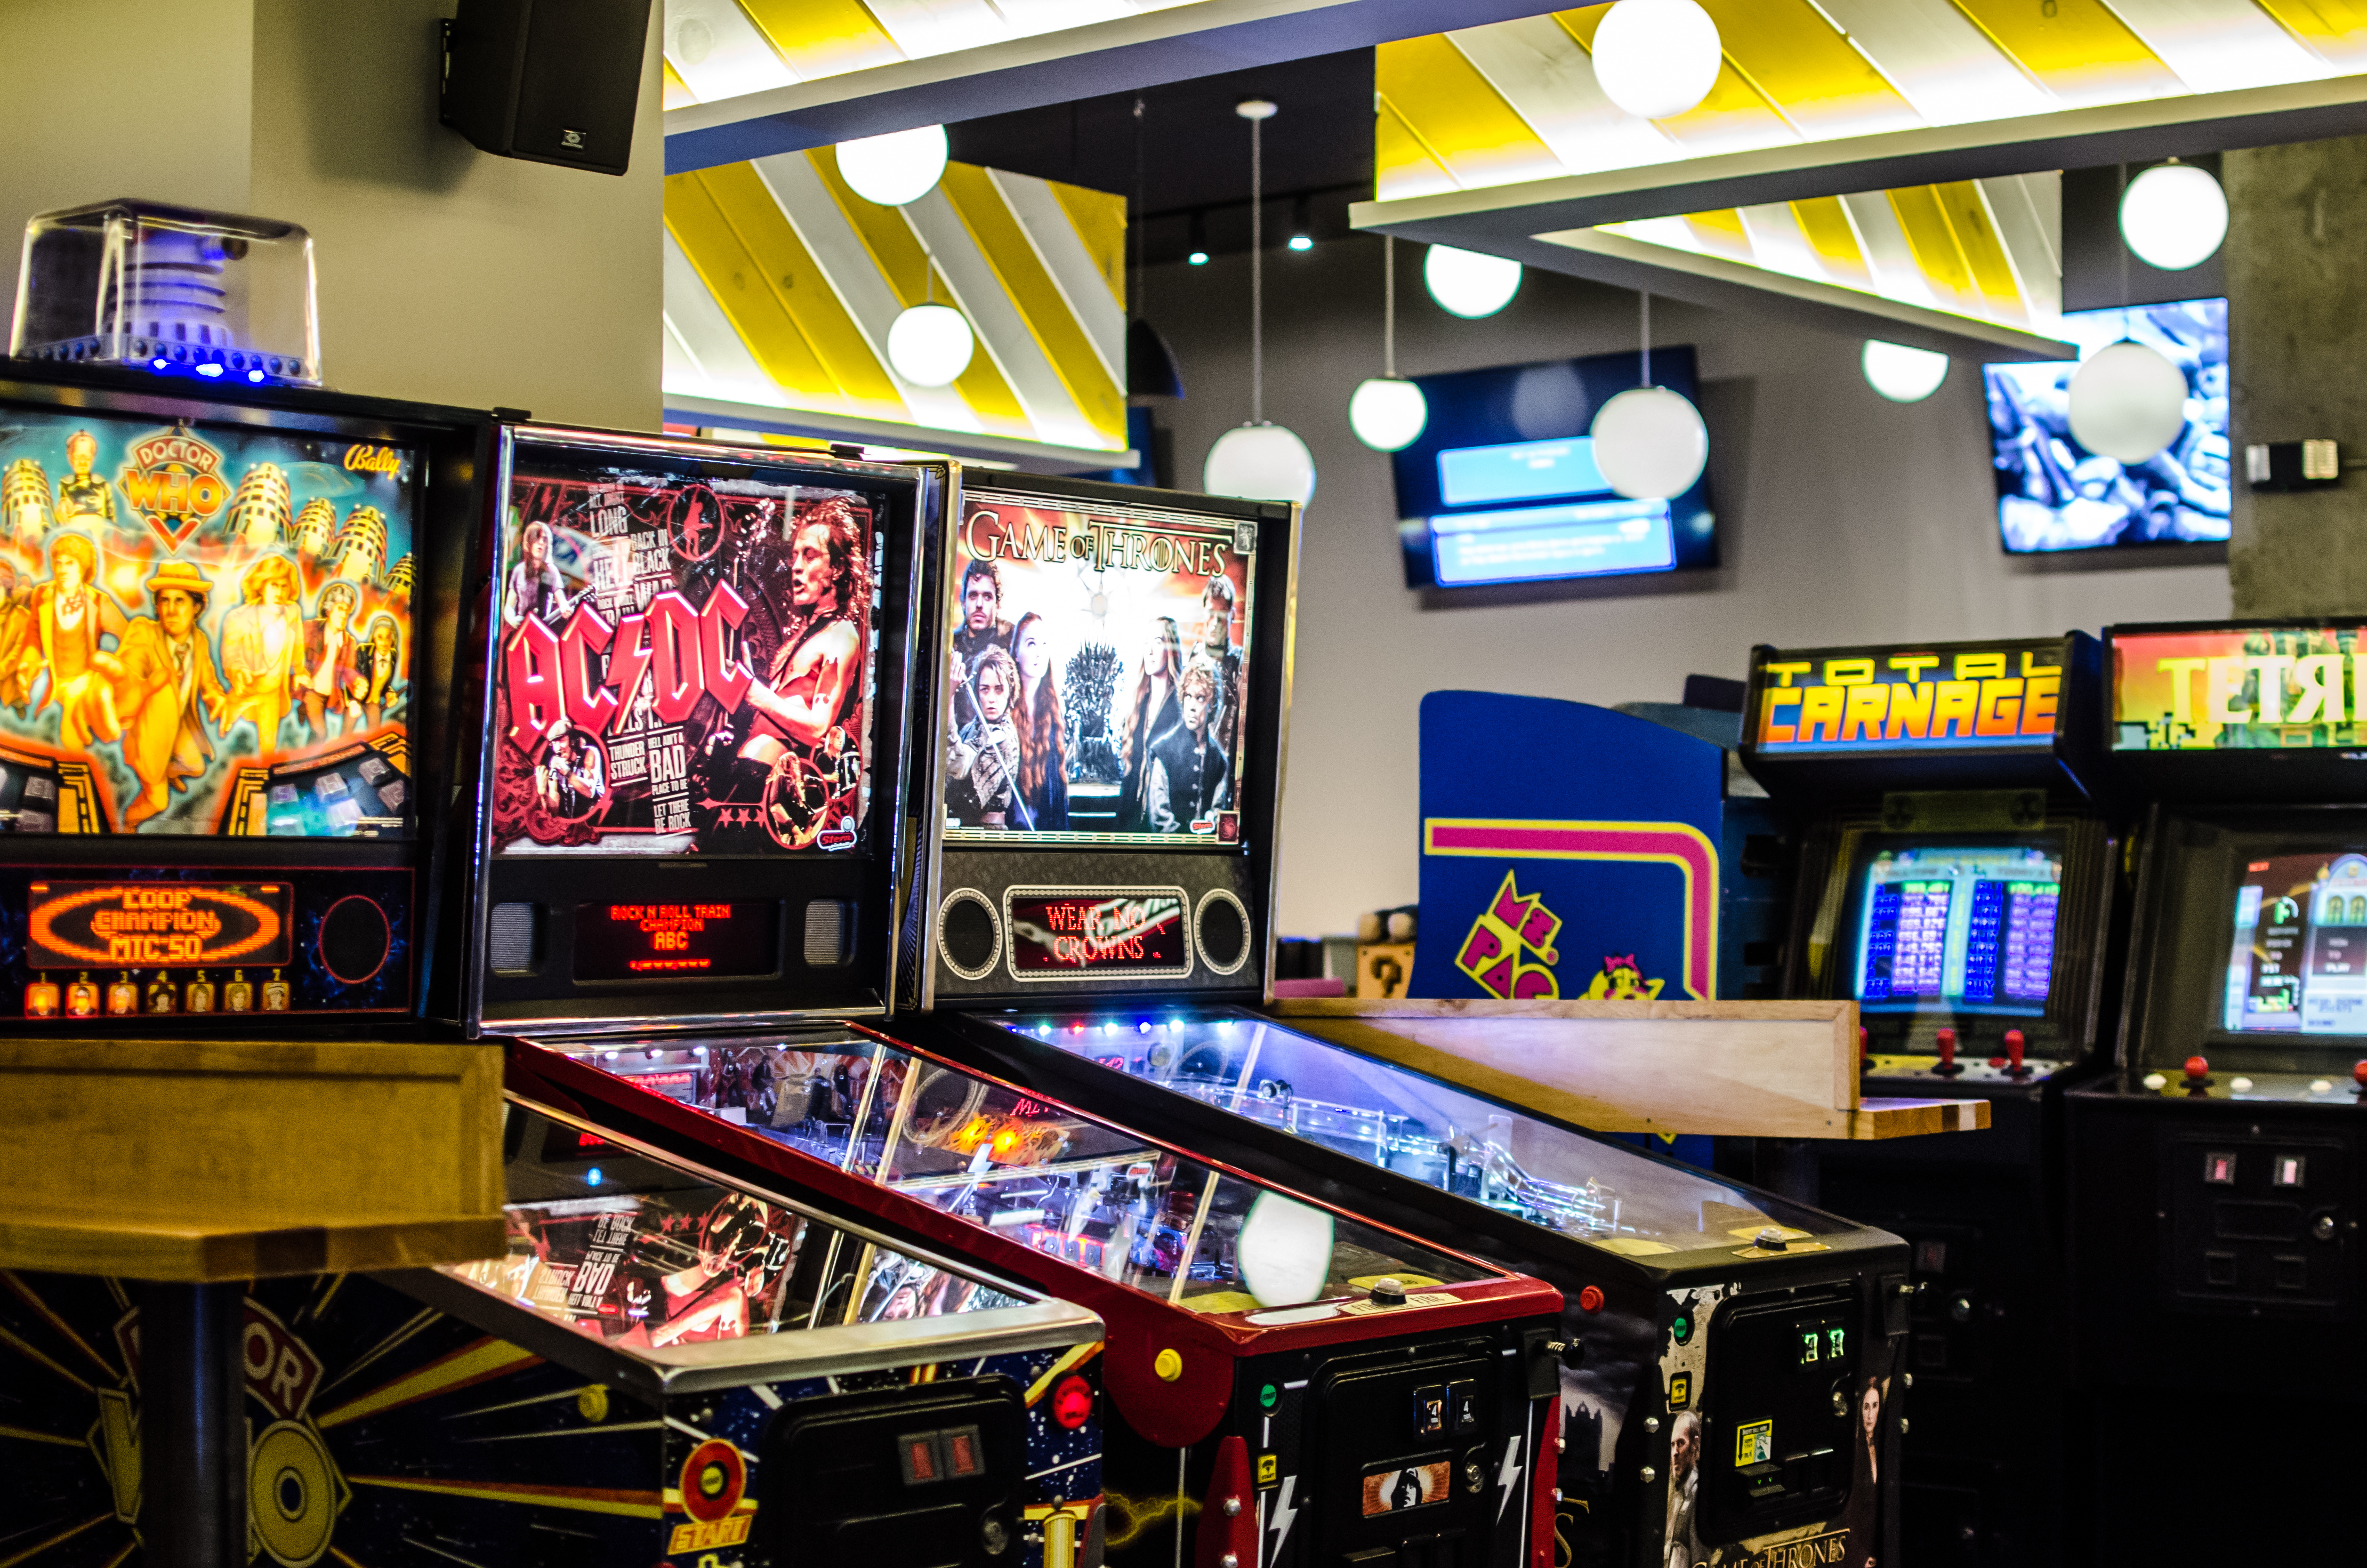 Arcade video games and pinball machines fill a room. White and yellow striped decorative panels hang from the ceiling.